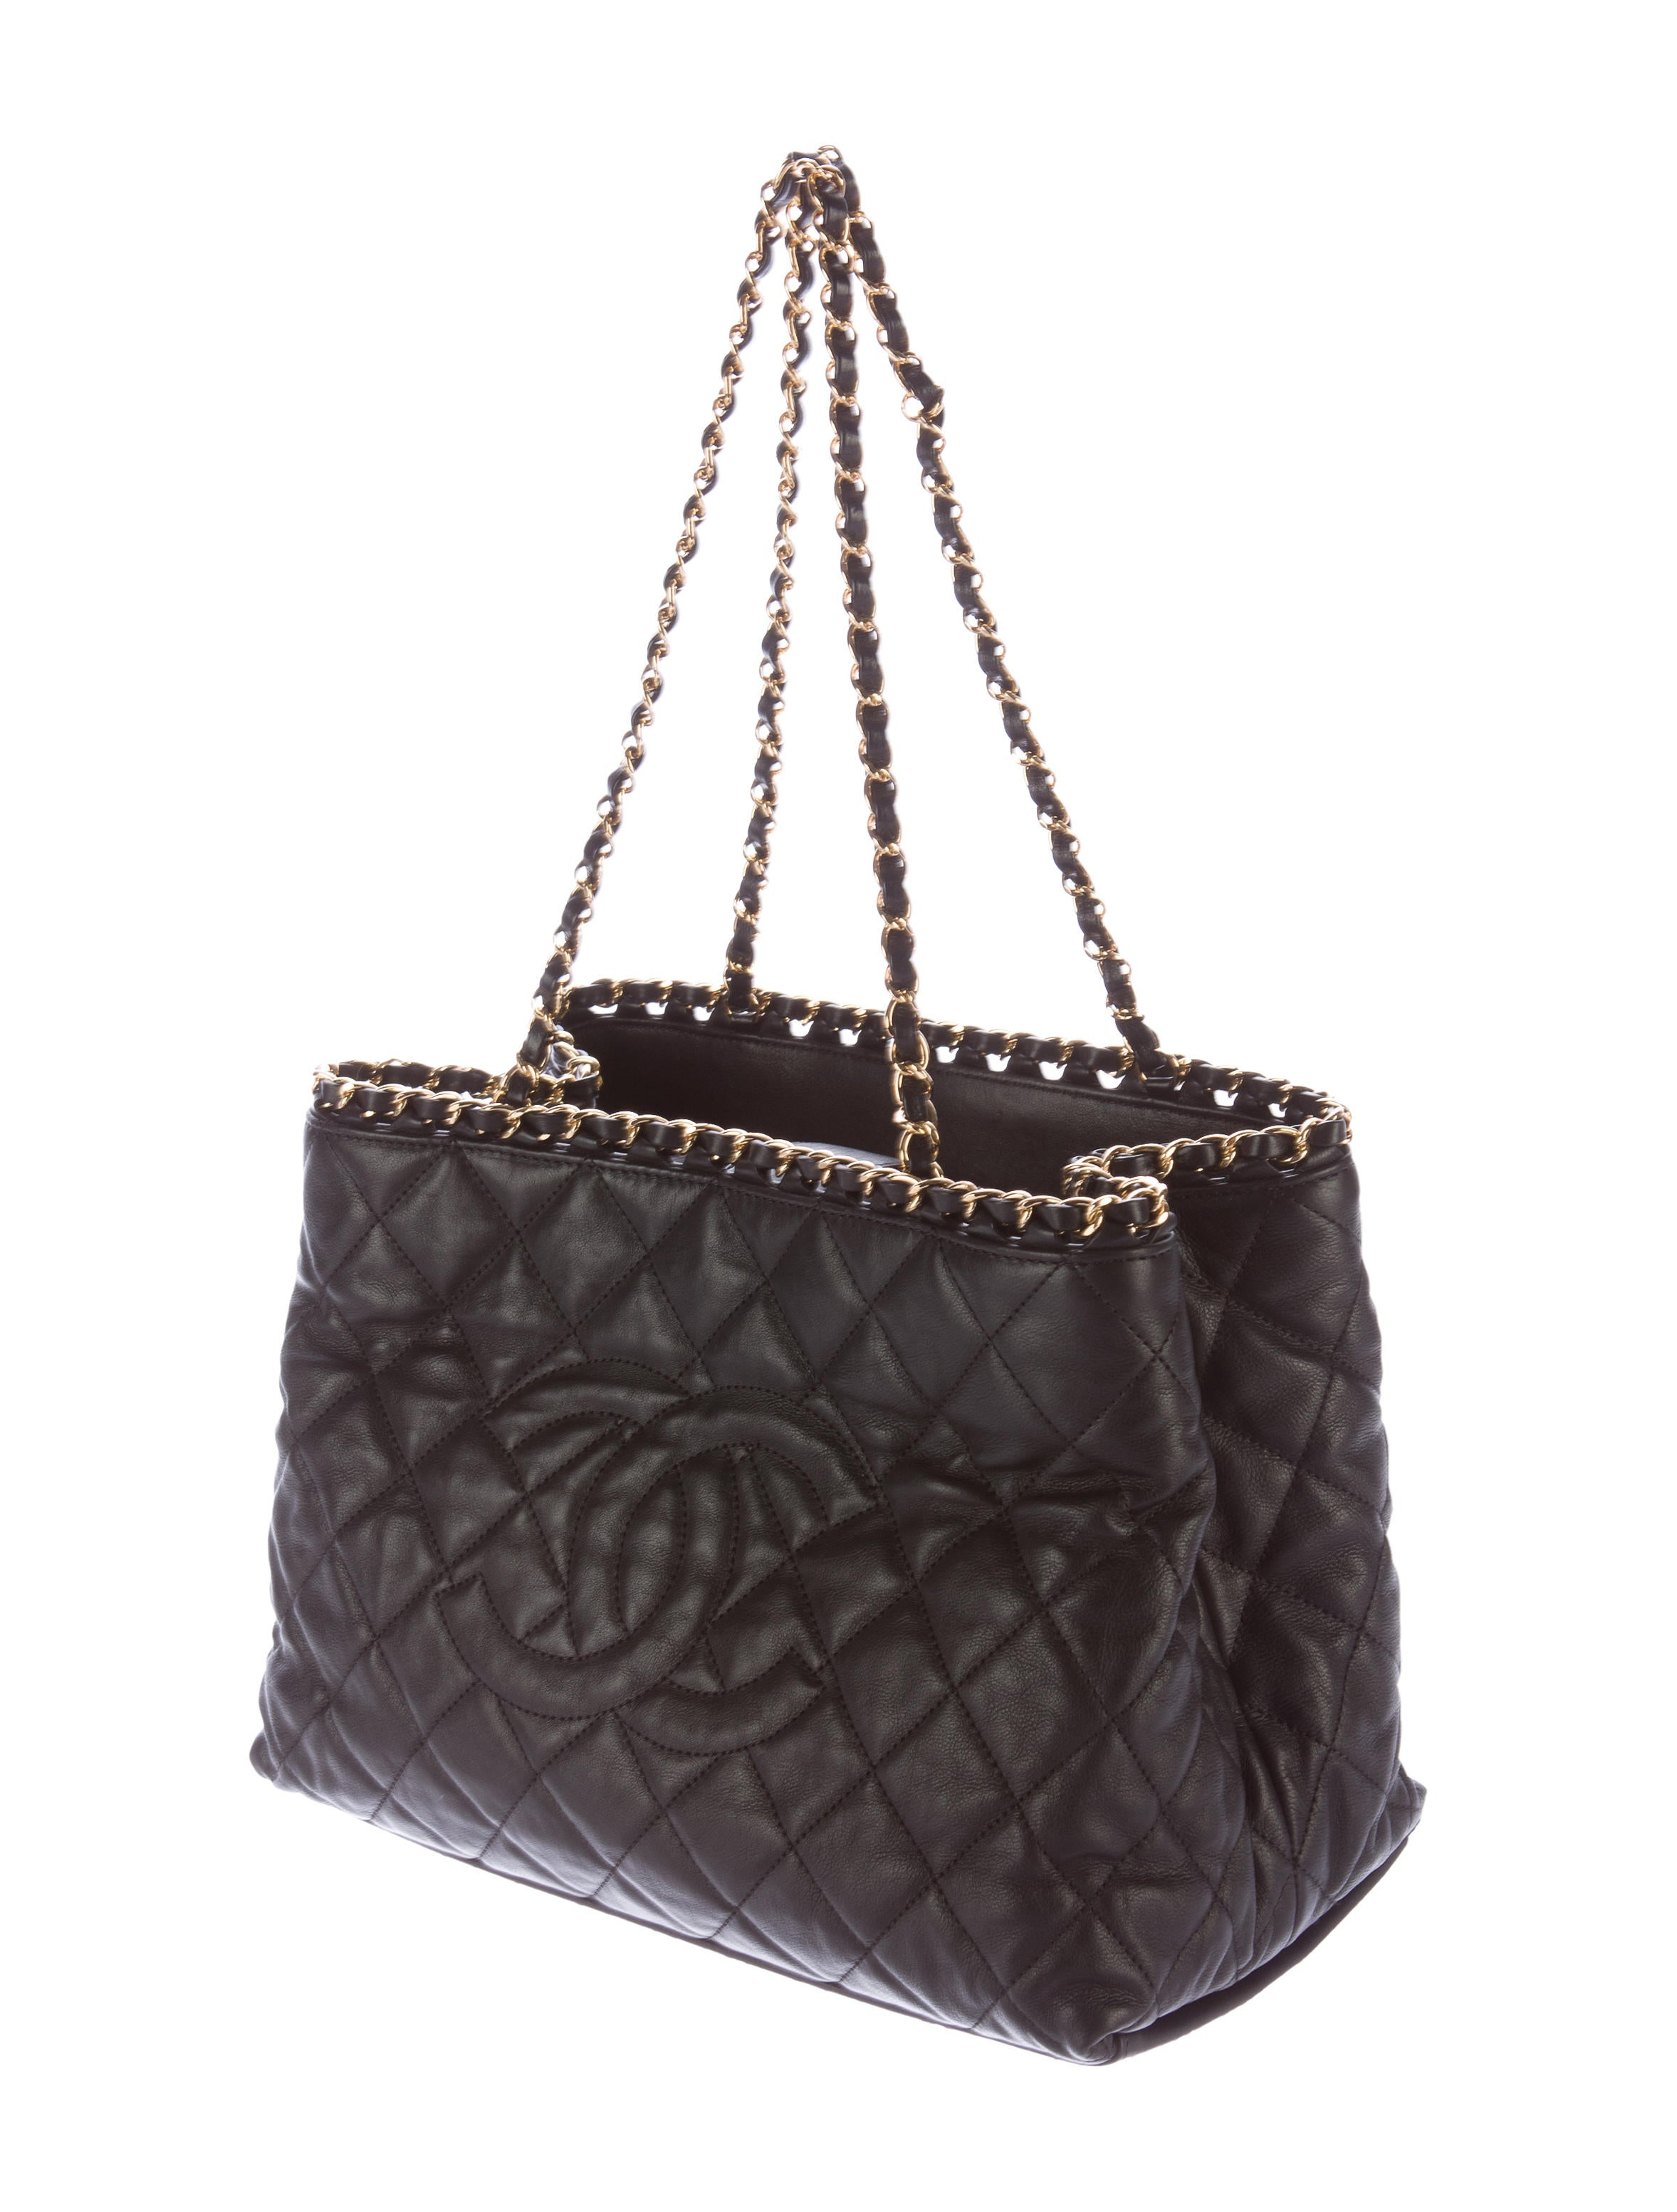 98b14a4dca2d Chanel Chain Me Tote Bags | Stanford Center for Opportunity Policy ...